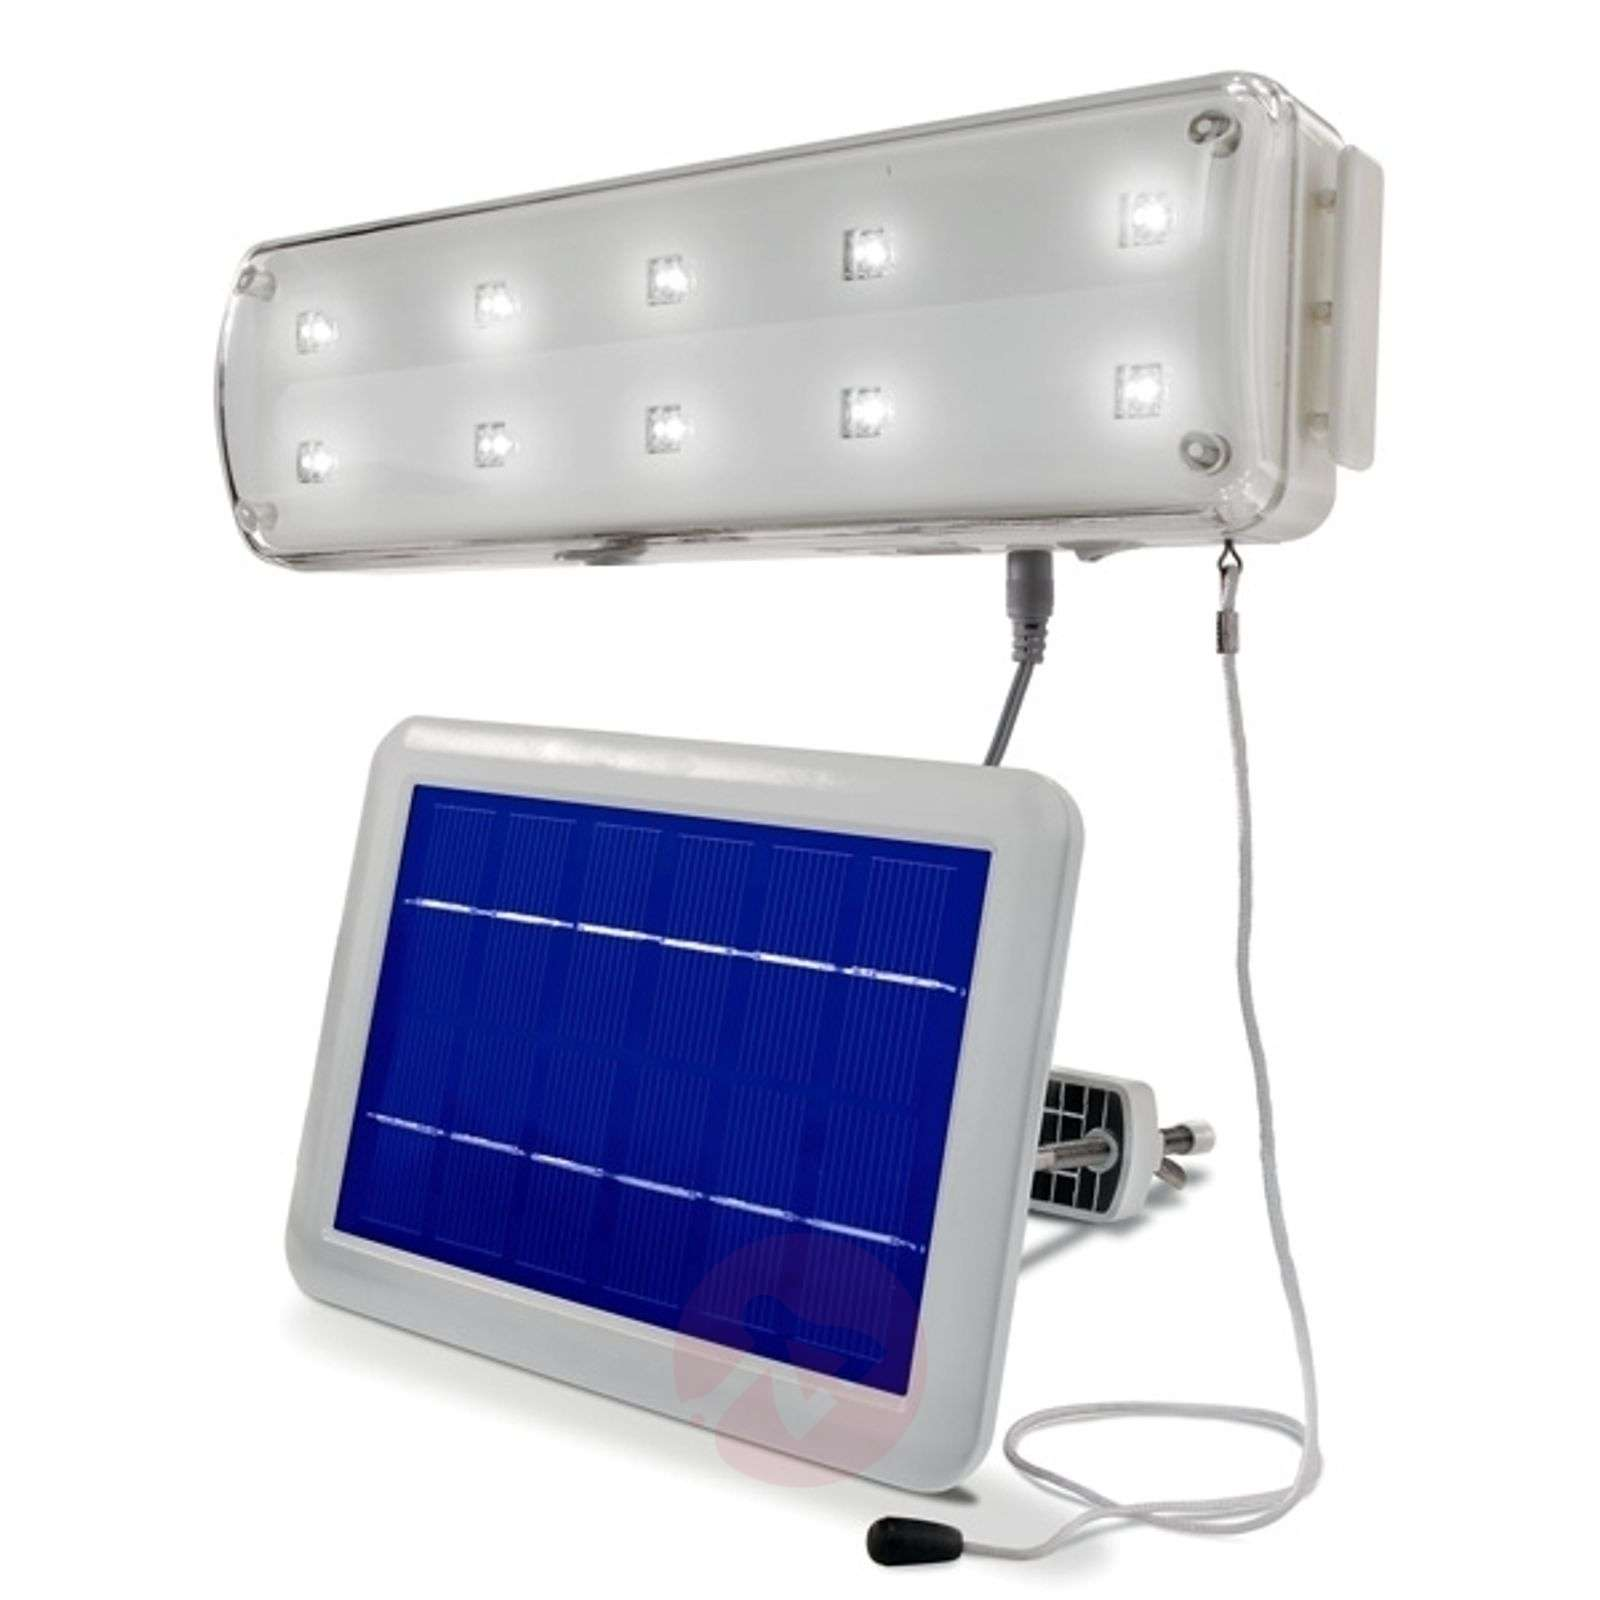 Solar light system with motion detector-3012201-01